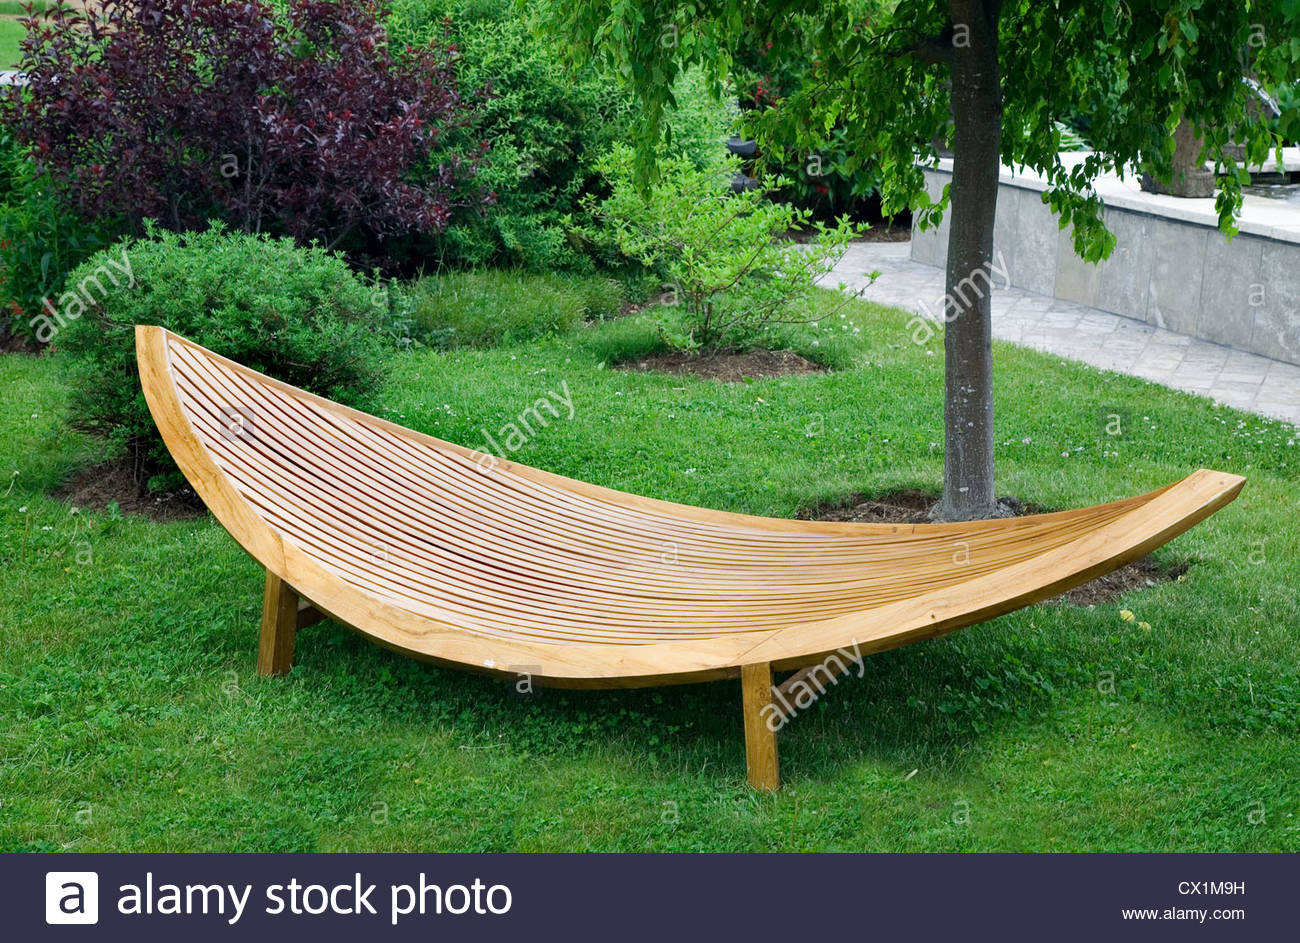 Surprising Perfect Garden With Modern Garden Furniture Carehomedecor Caraccident5 Cool Chair Designs And Ideas Caraccident5Info